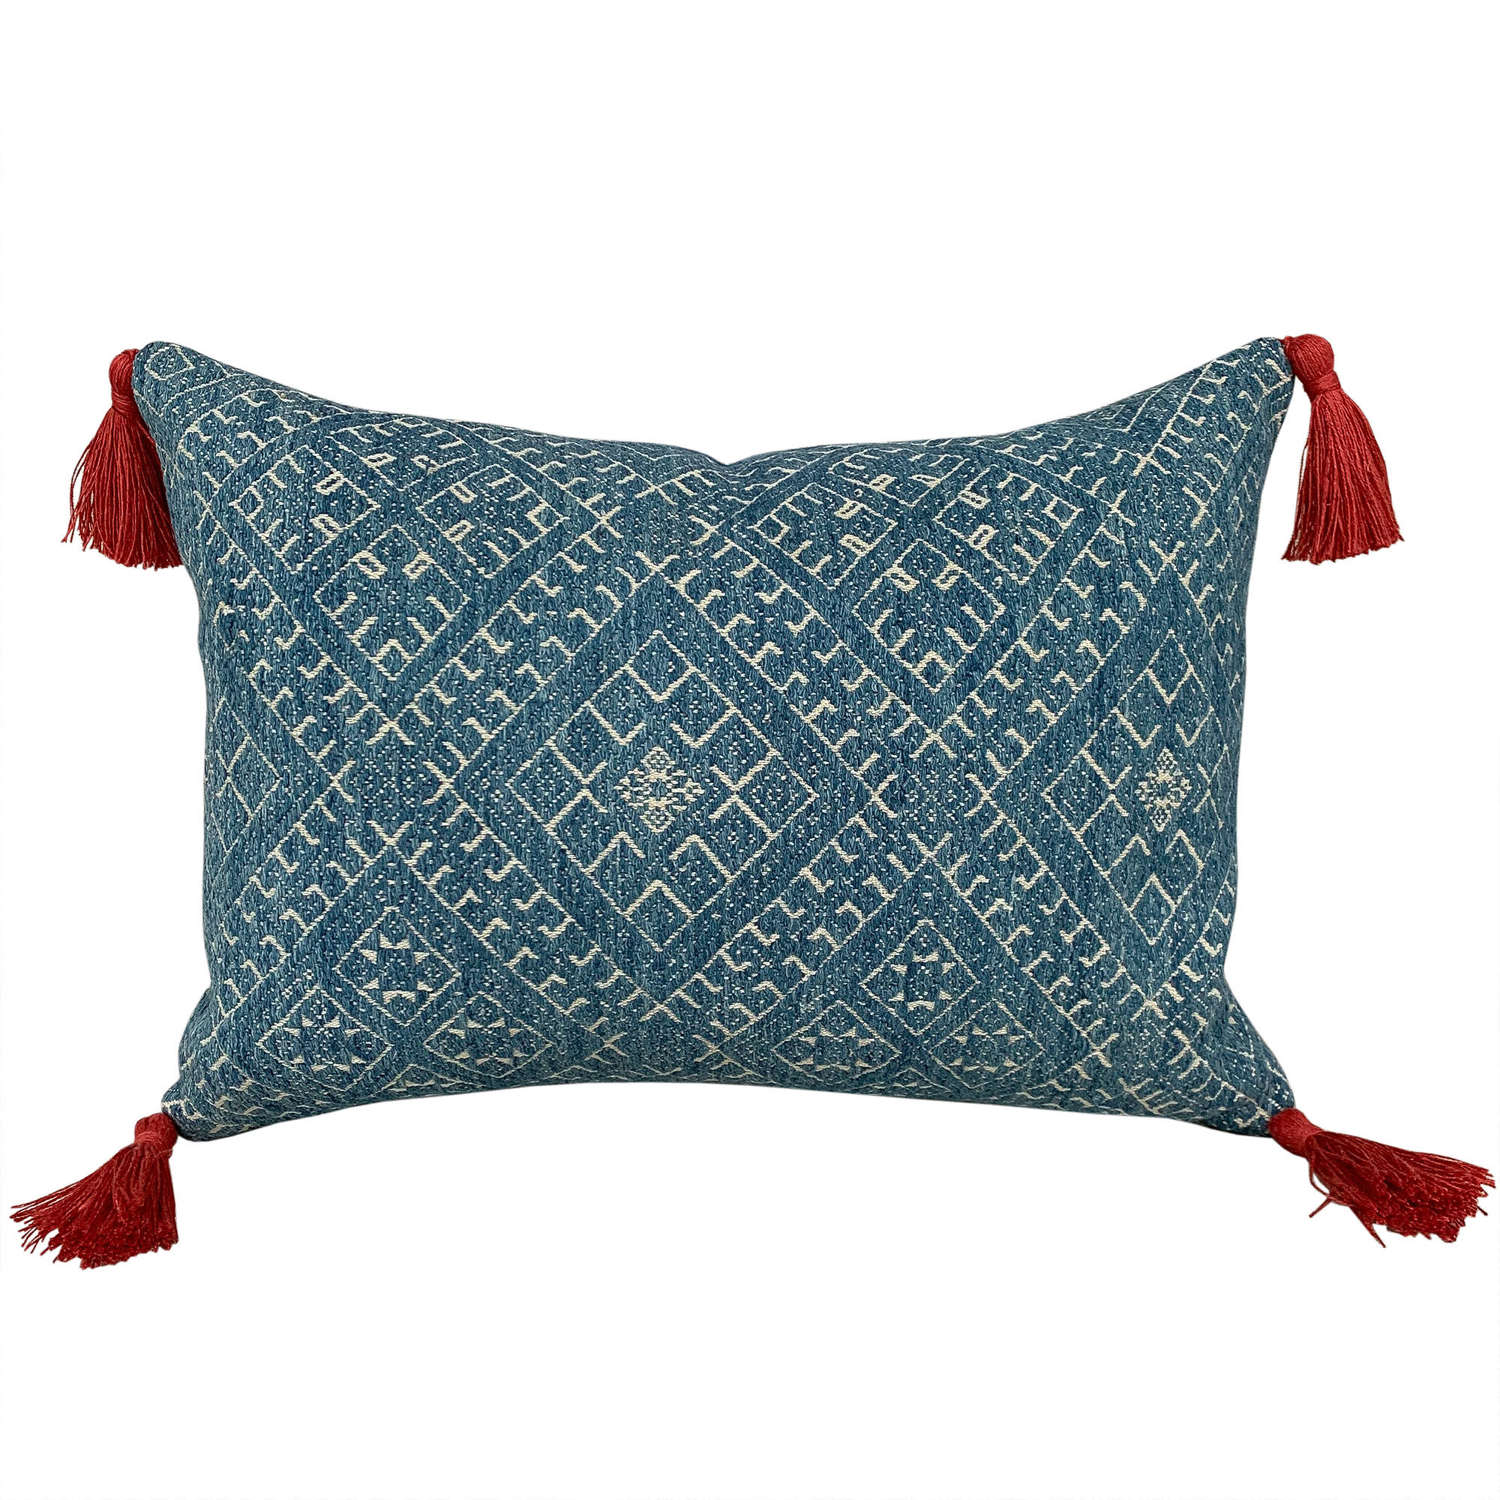 Indigo Dai wedding blanket cushions, small